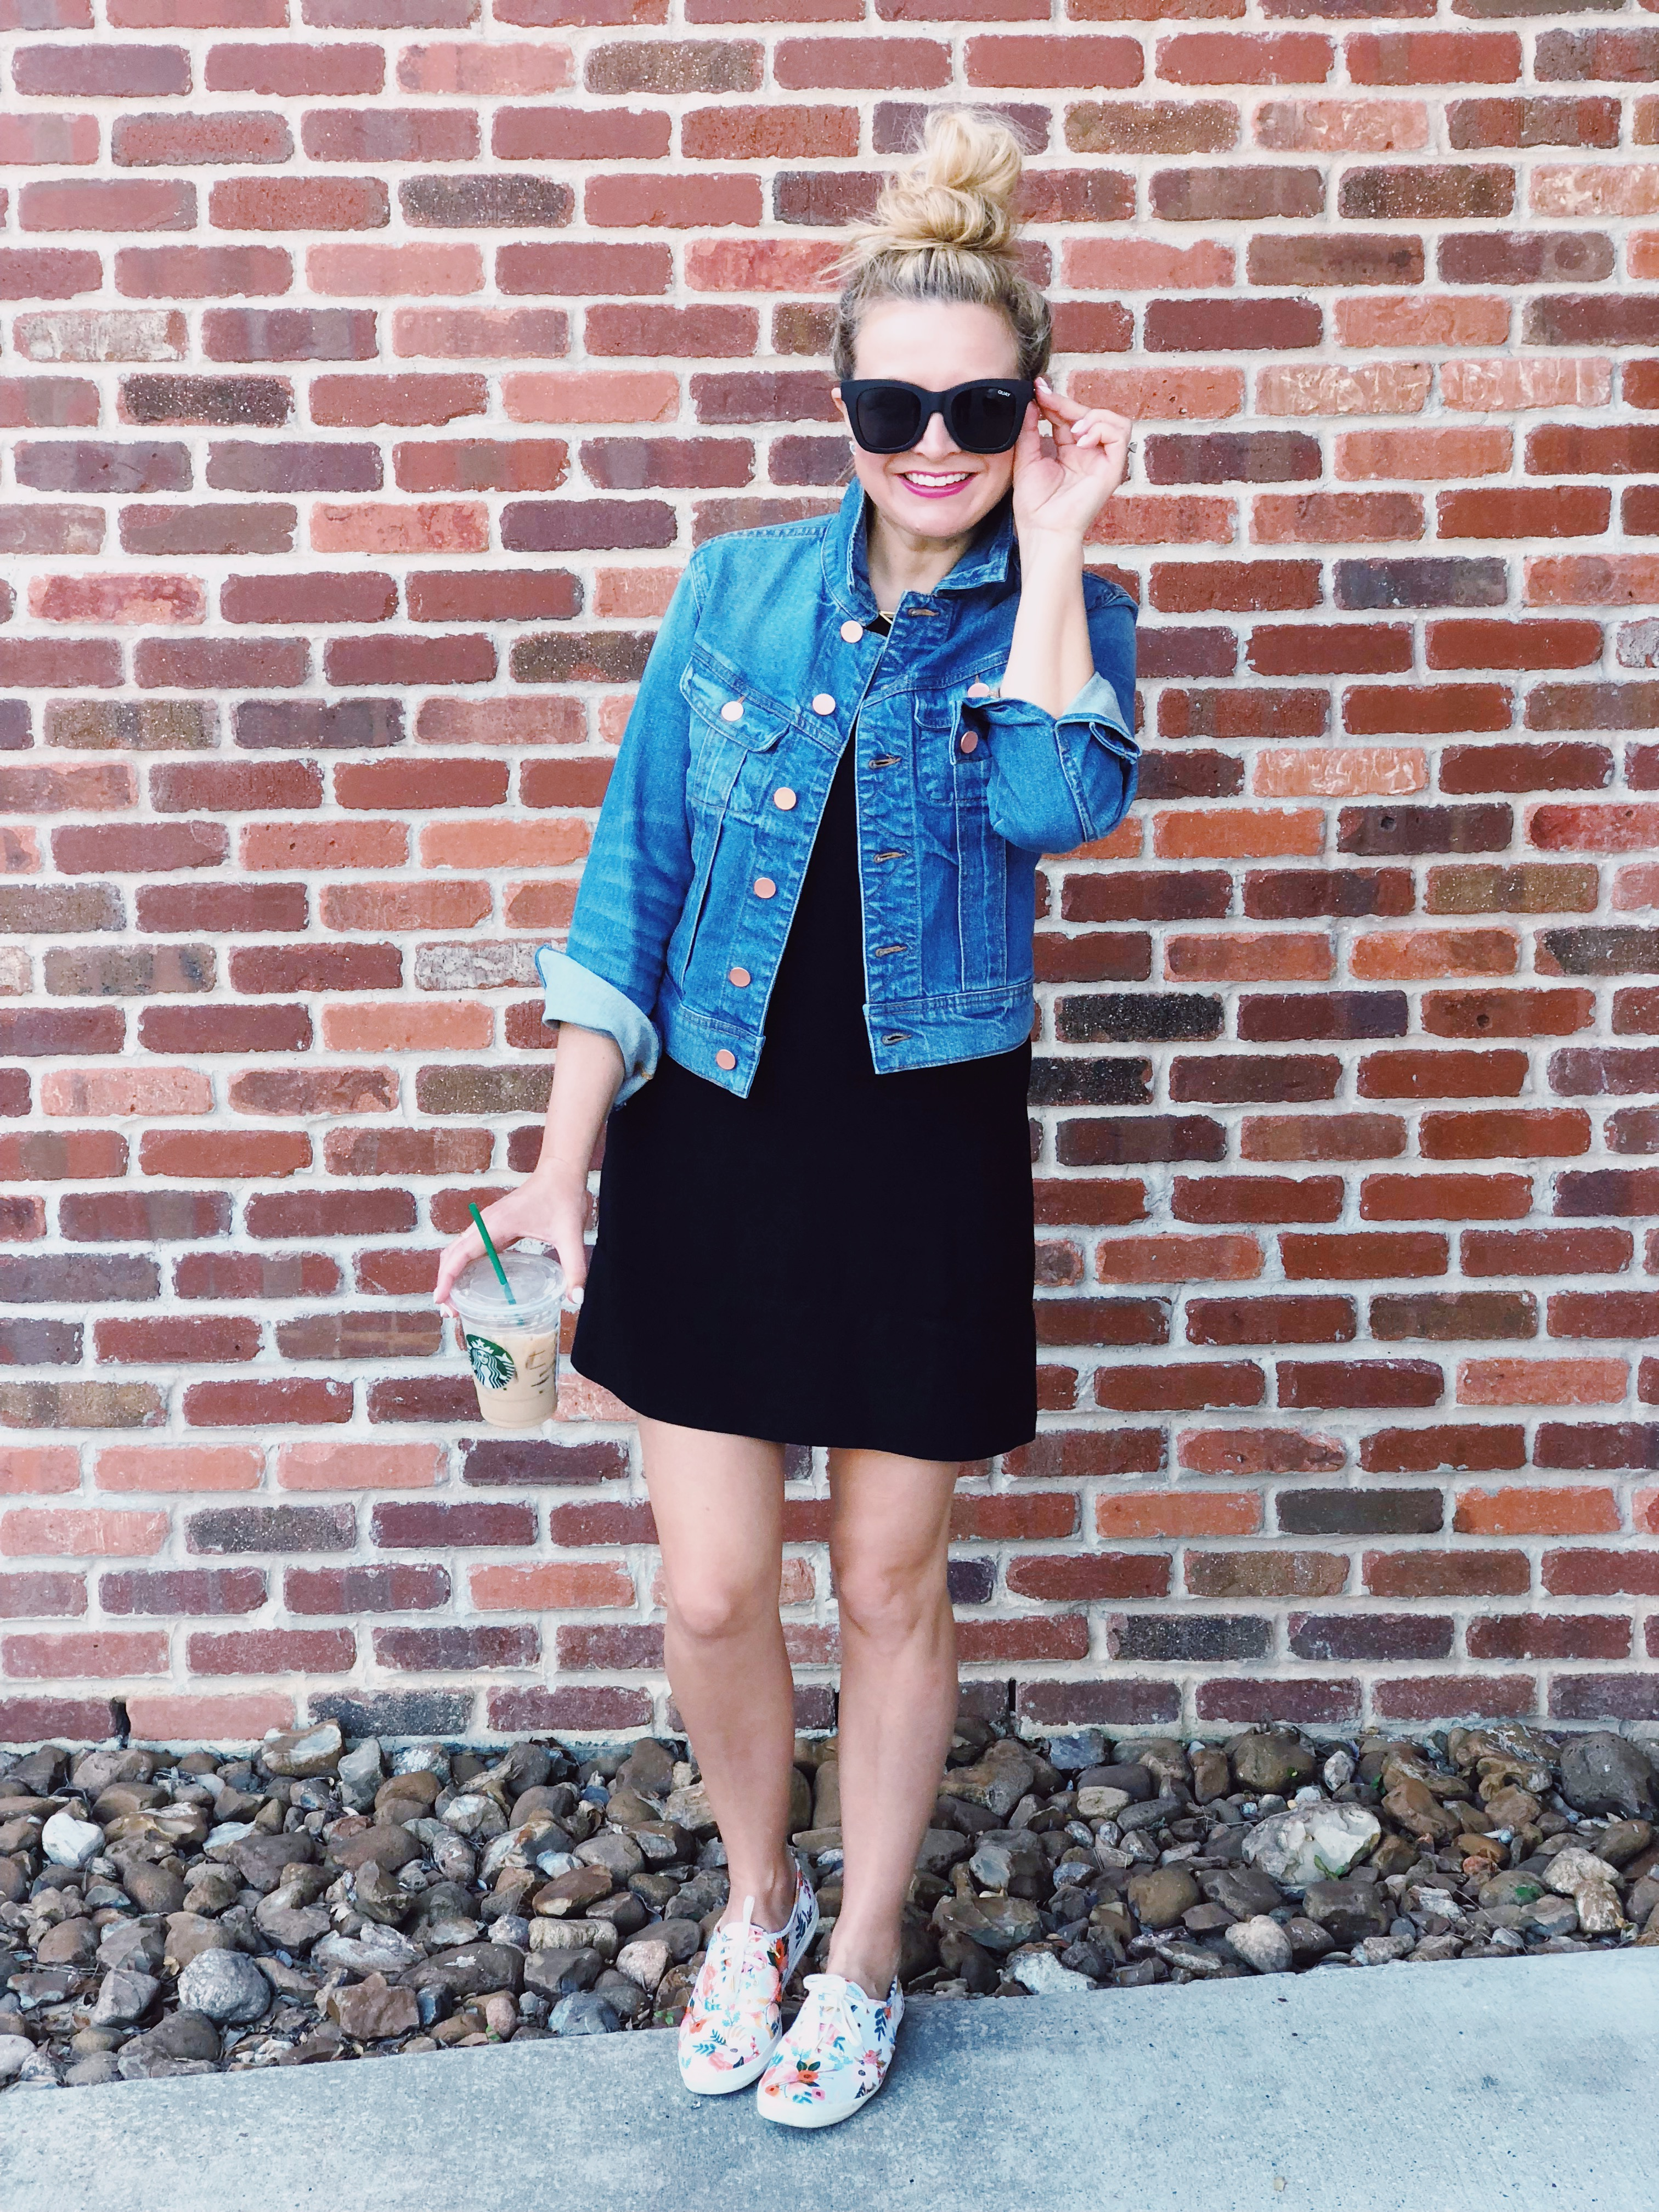 The best black dress - Nordstrom Summer Outfits styled by popular Houston fashion blogger, Fancy Ashley